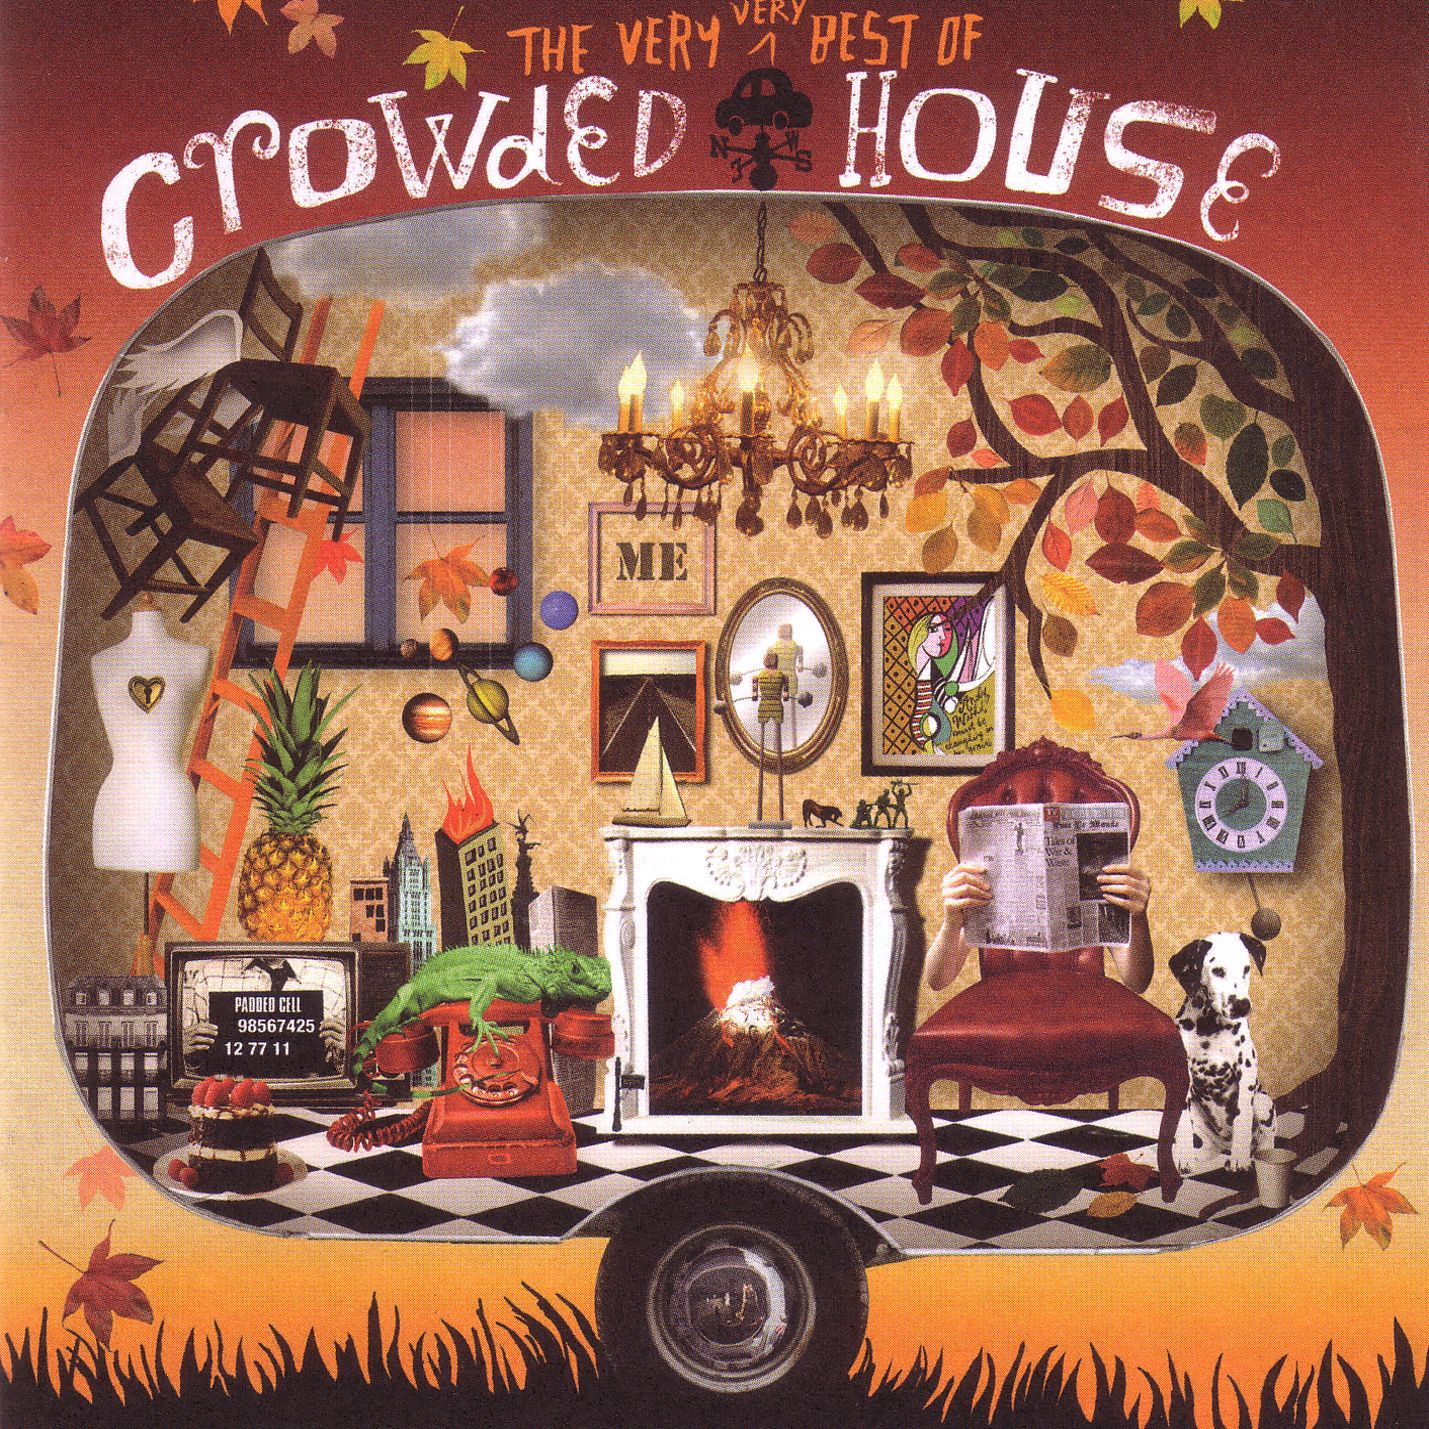 The very very best of crowded house by crowded house for House music 1986